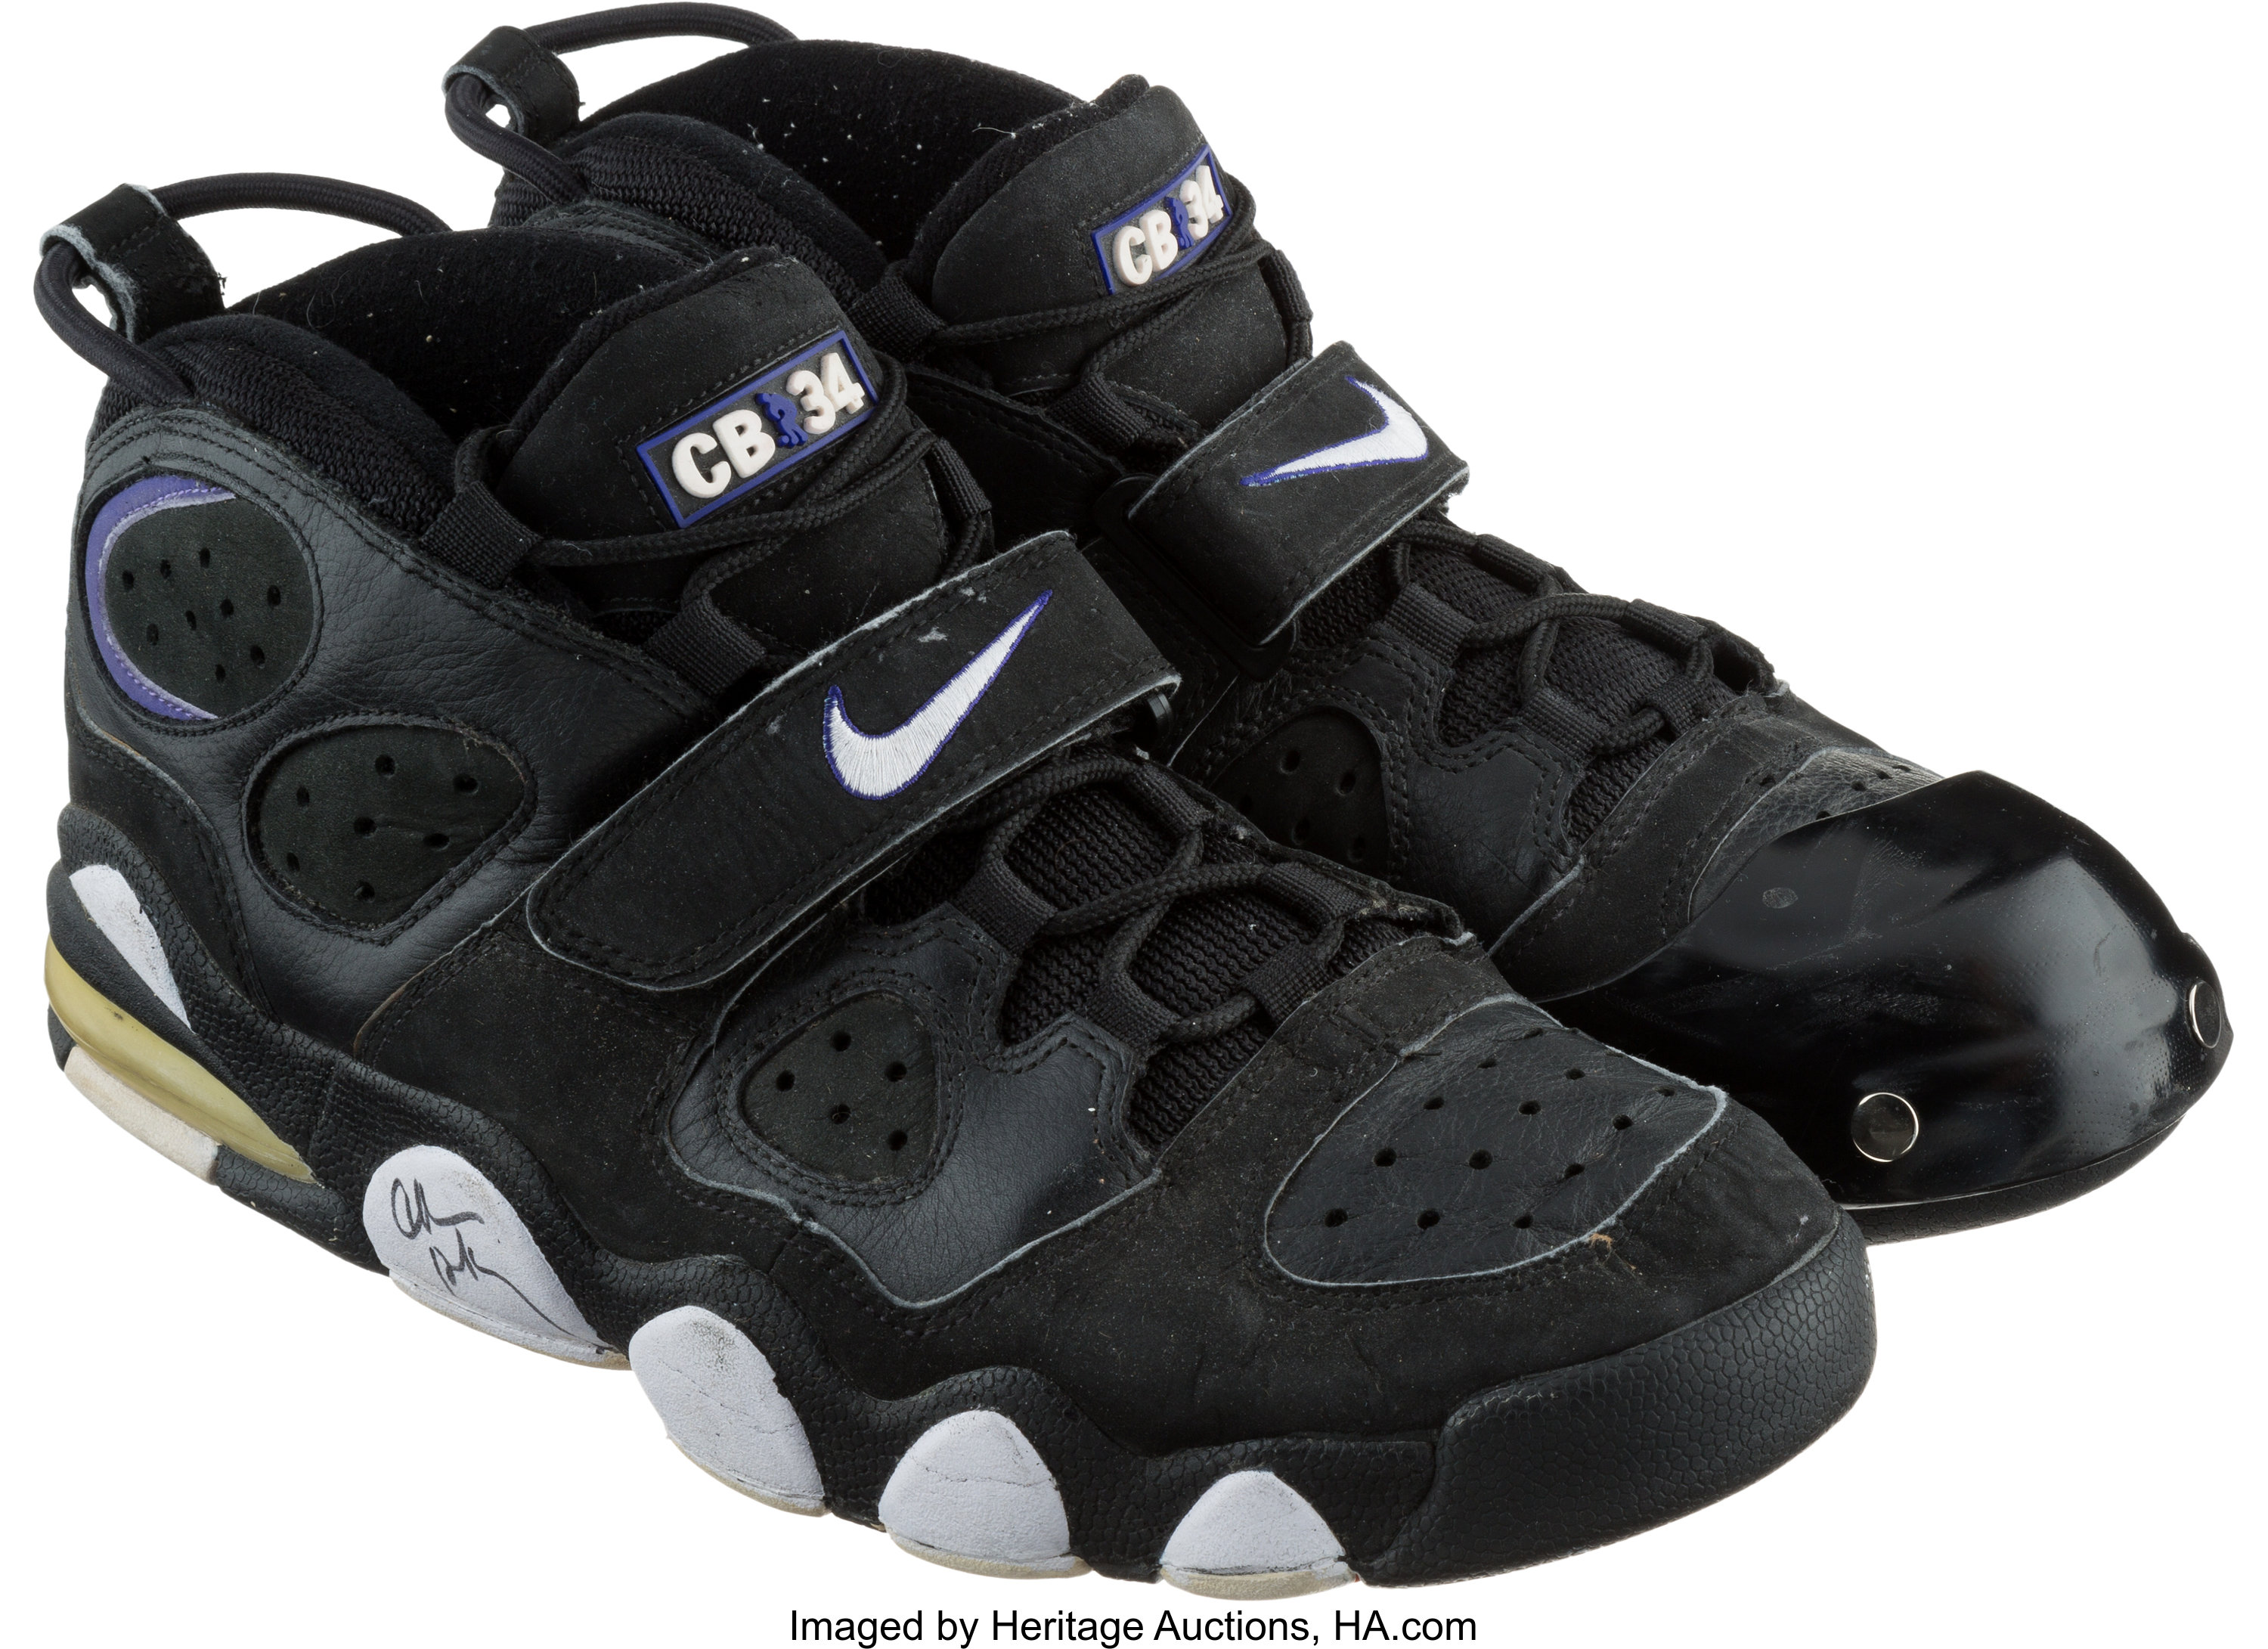 Circa 1996 Scottie Pippen Signed Game Used Nike Airs